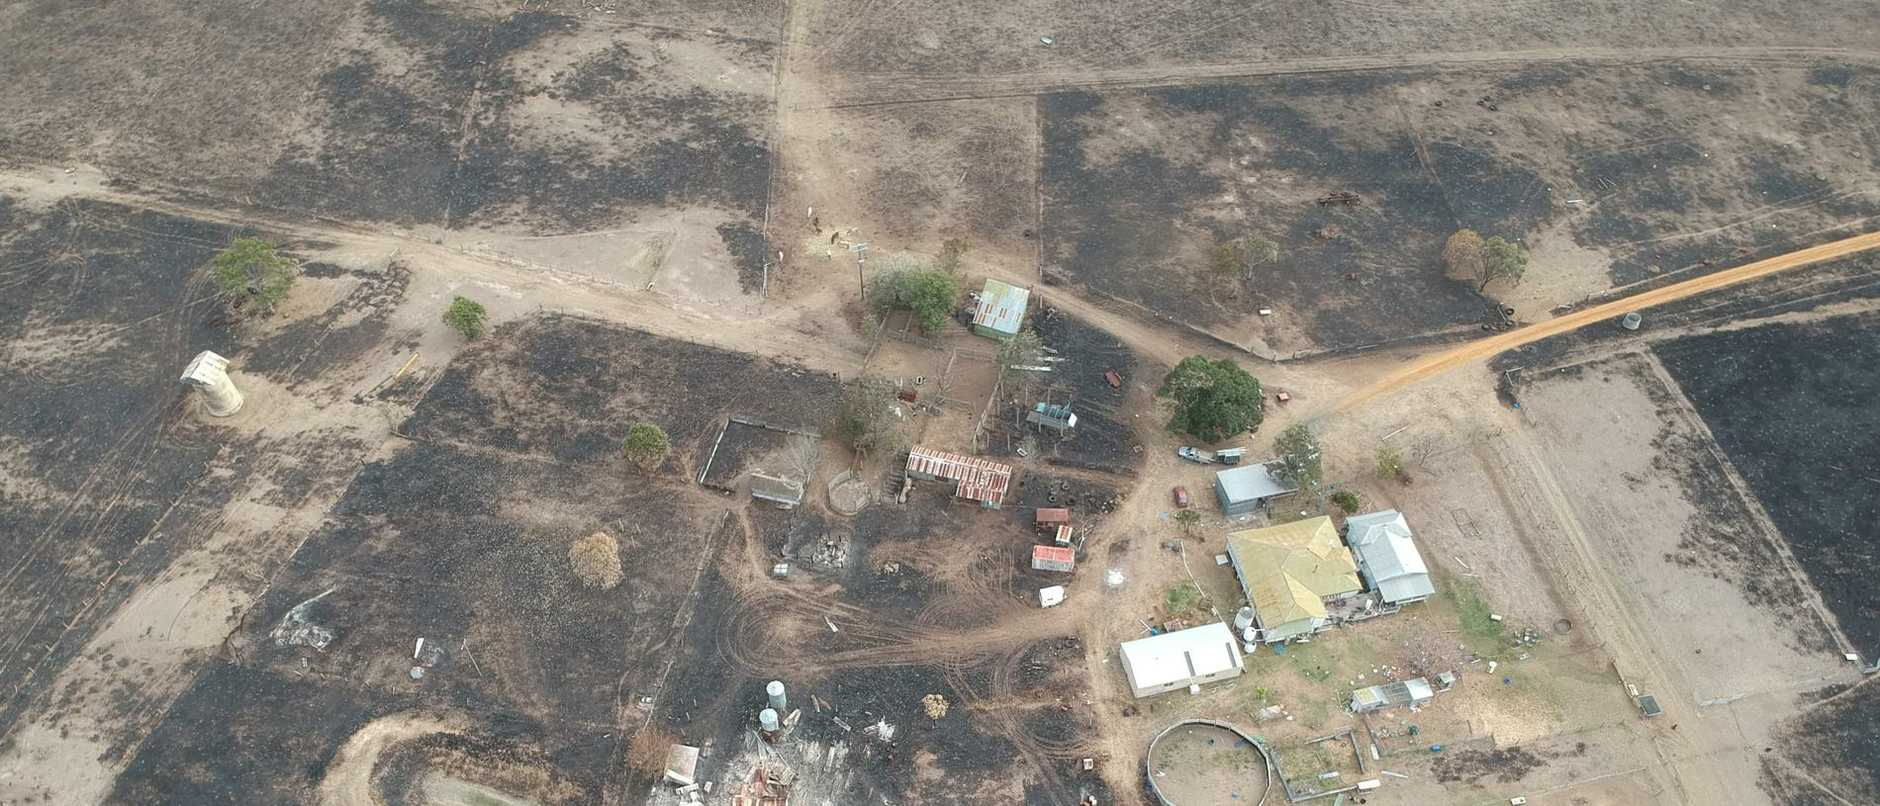 Model aircraft sparked a fire that destroyed parts of a property west of Ipswich.